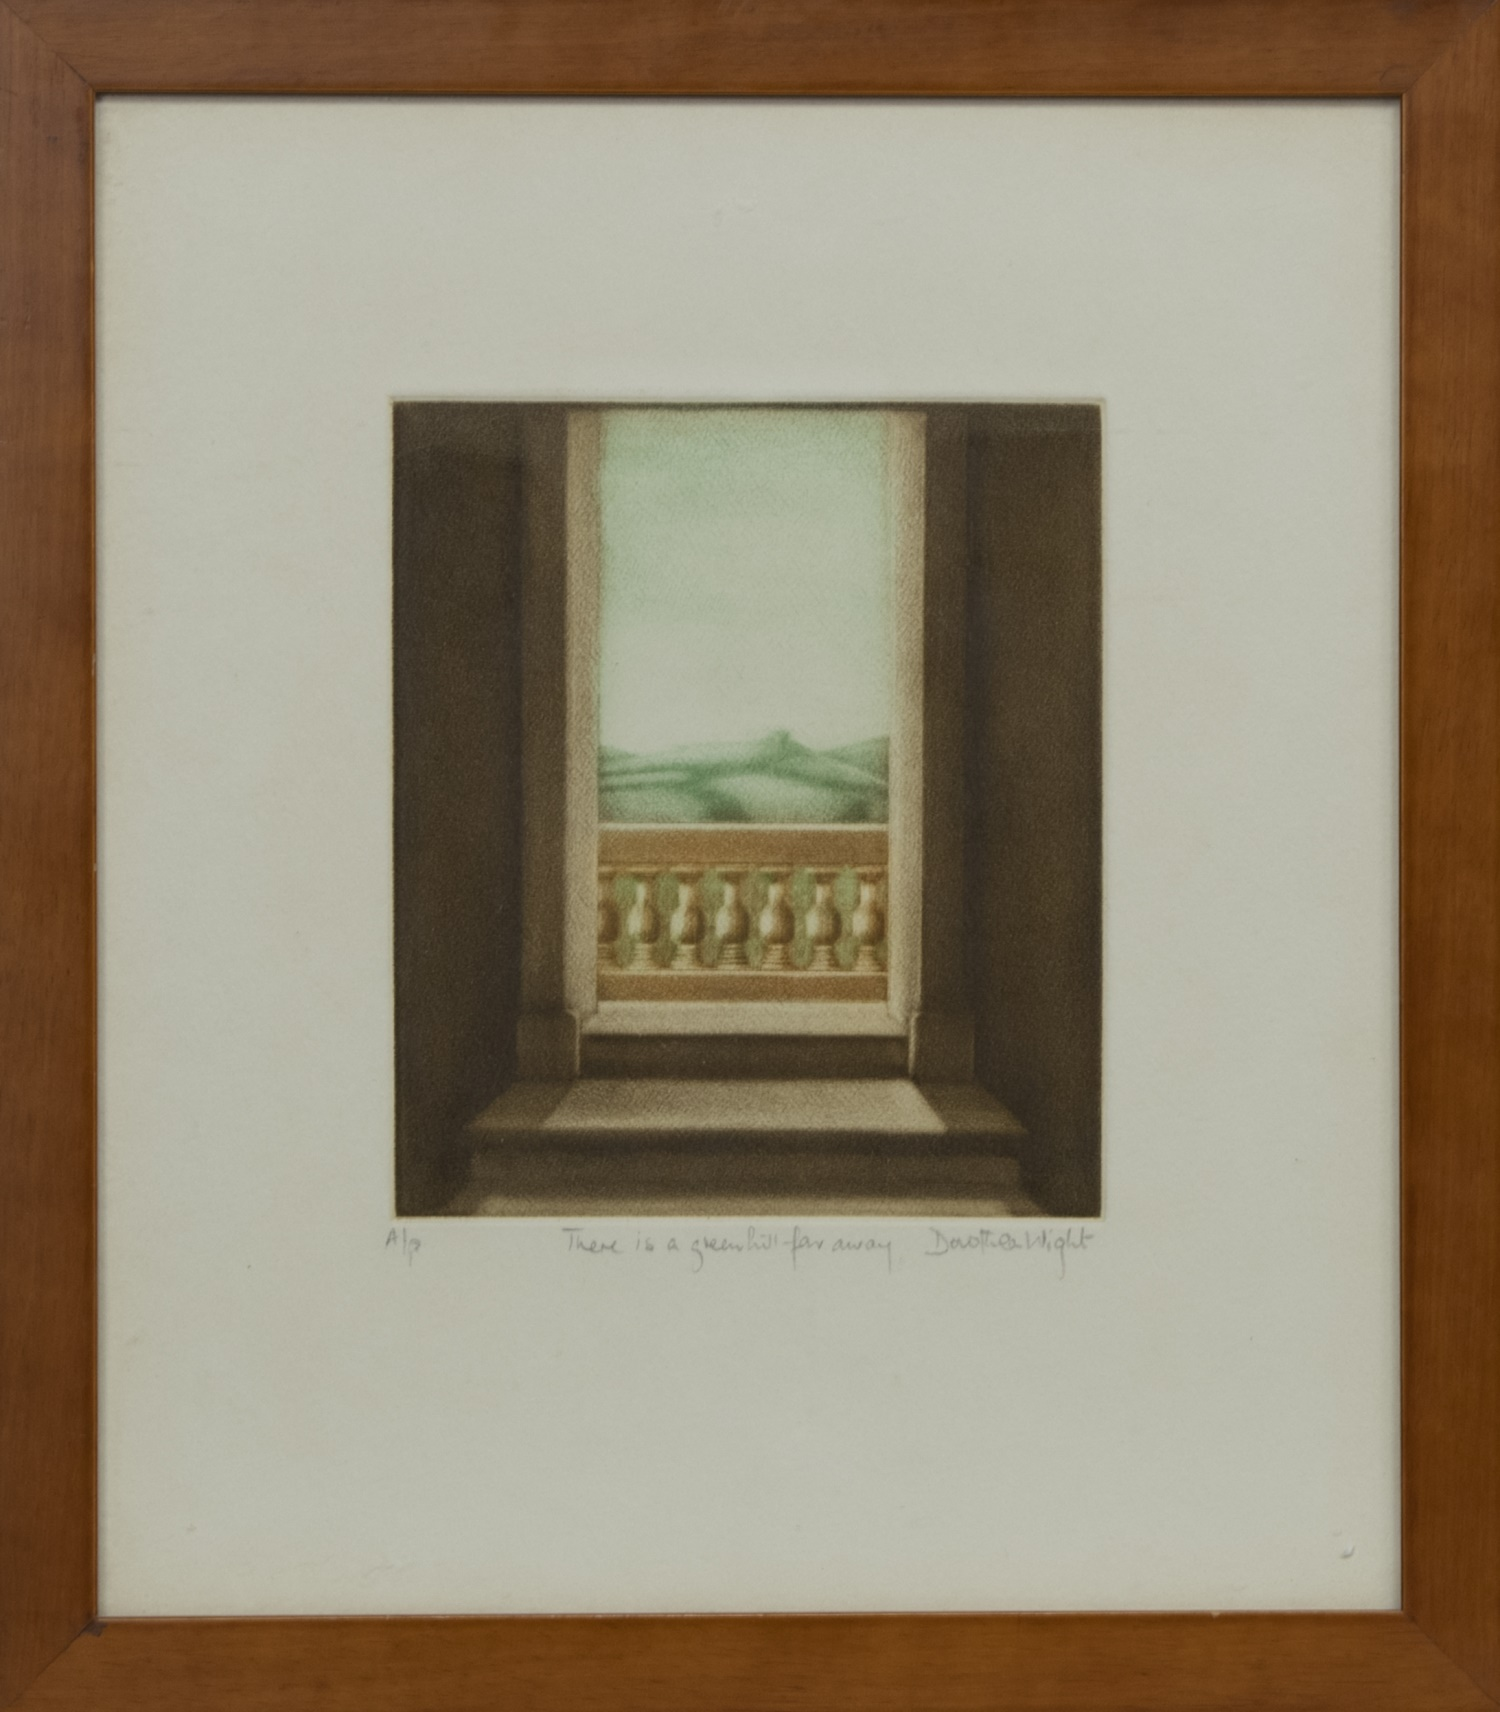 THERE IS A GREEN HILL FAR AWAY, A MEZZOTINT BY DOROTHEA WIGHT